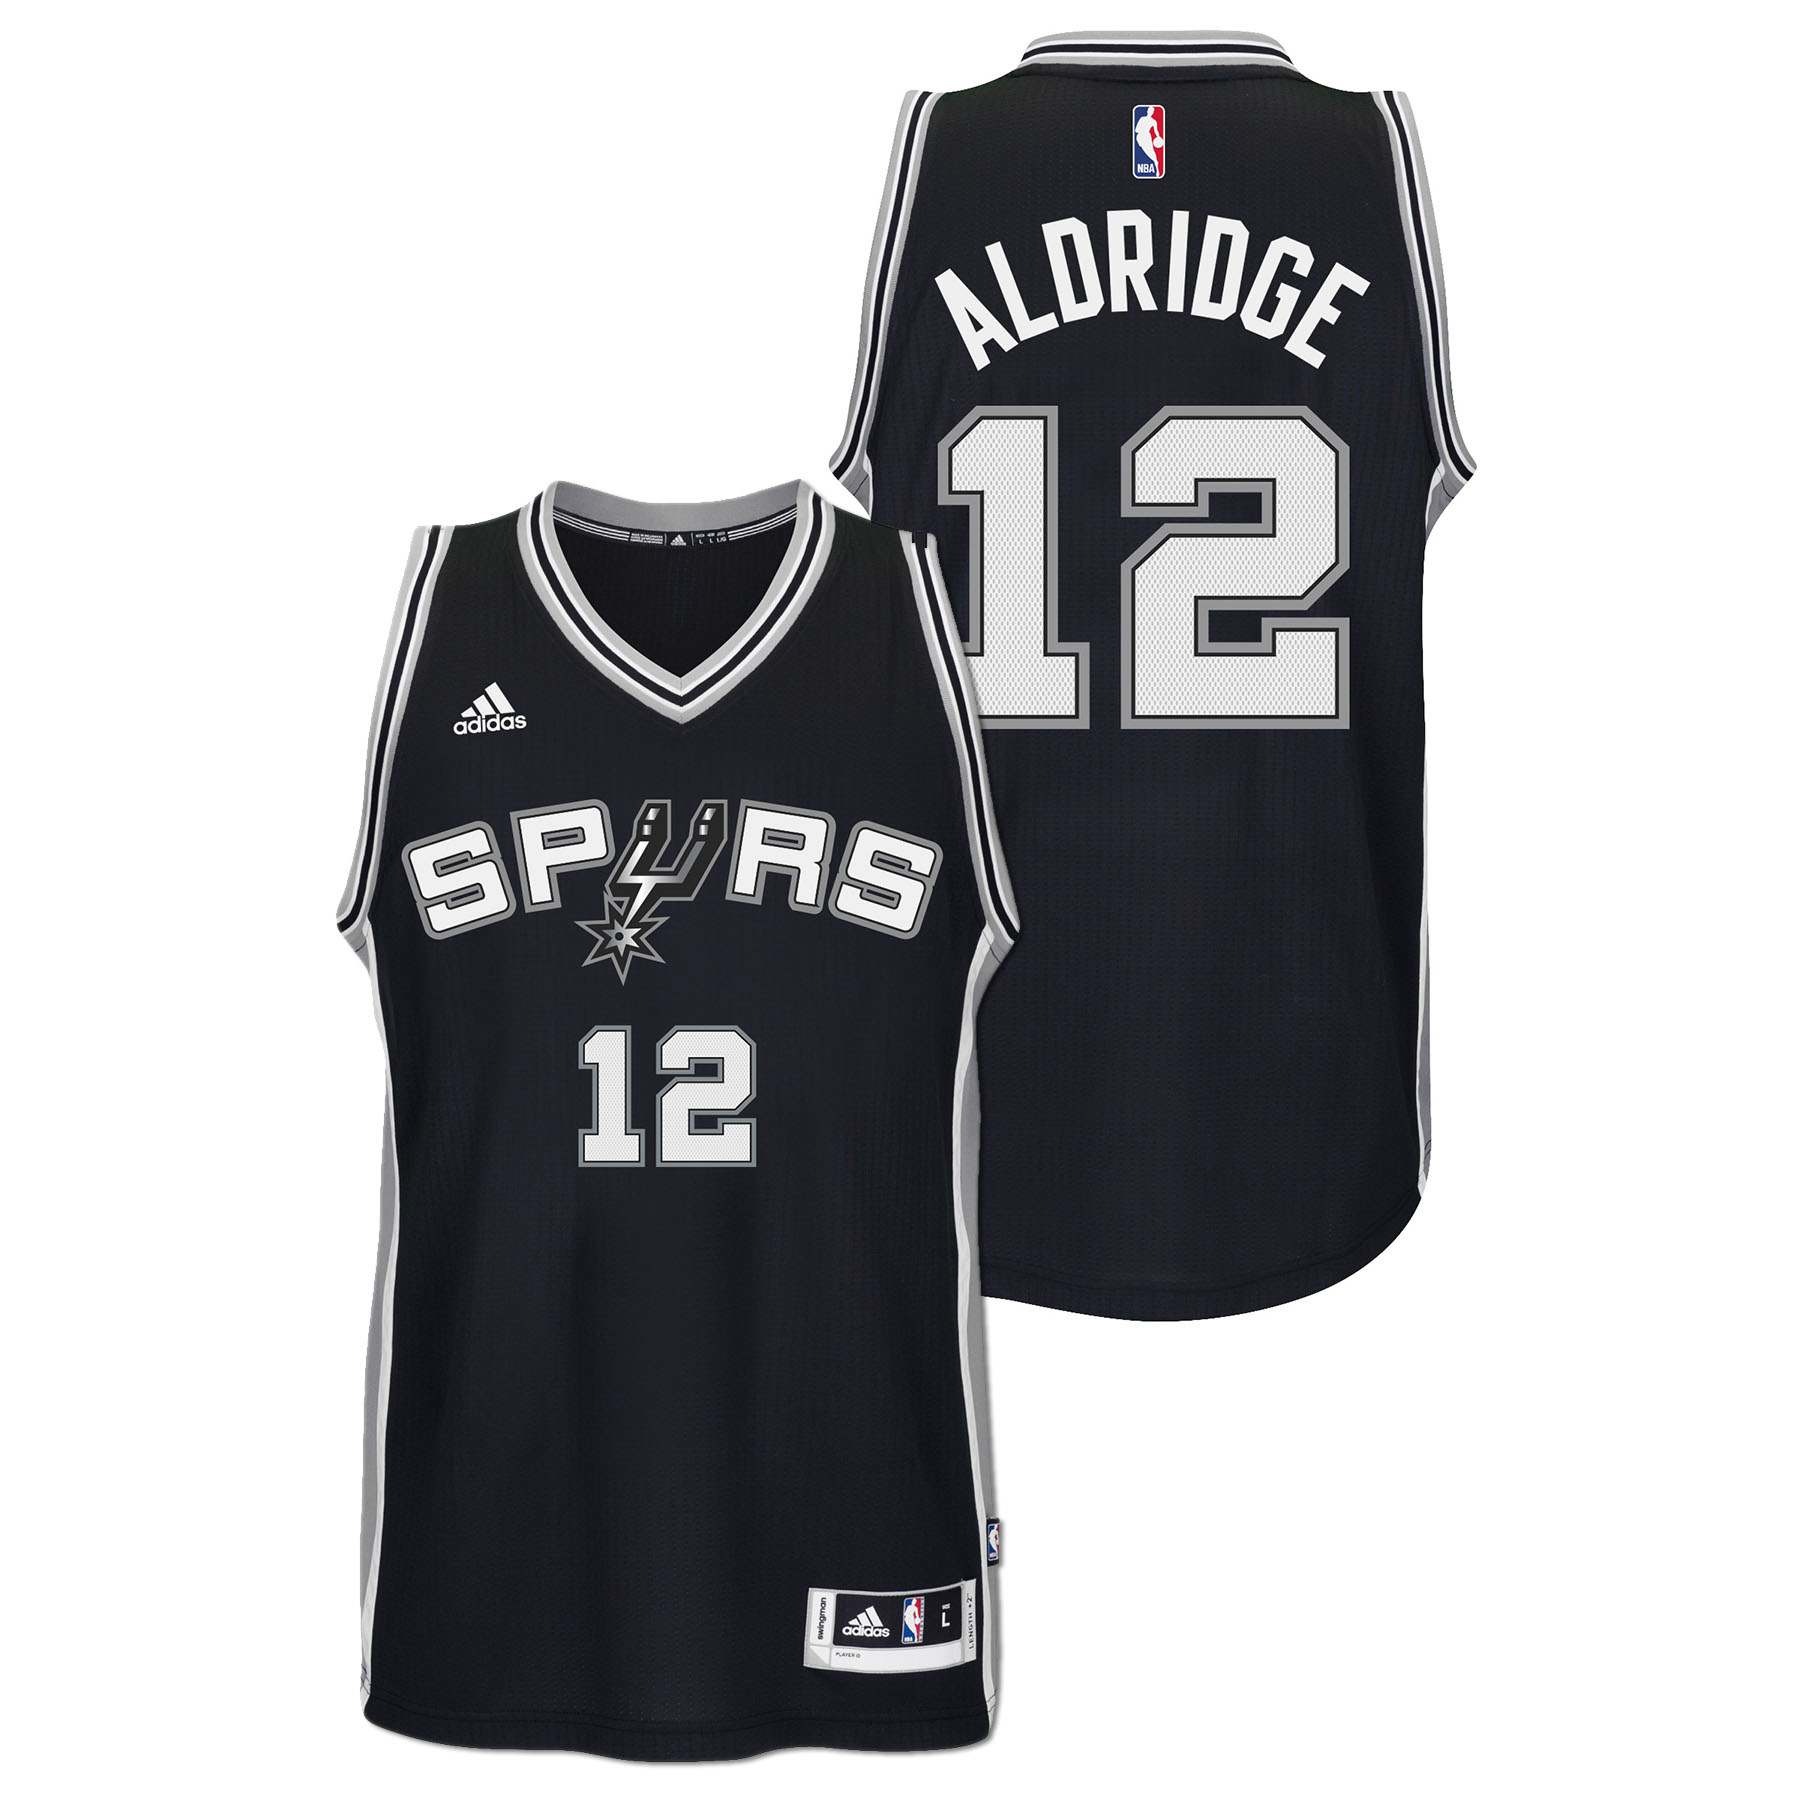 LaMarcus Aldridge San Antonio Spurs Adidas Road Swingman Jersey (Black)